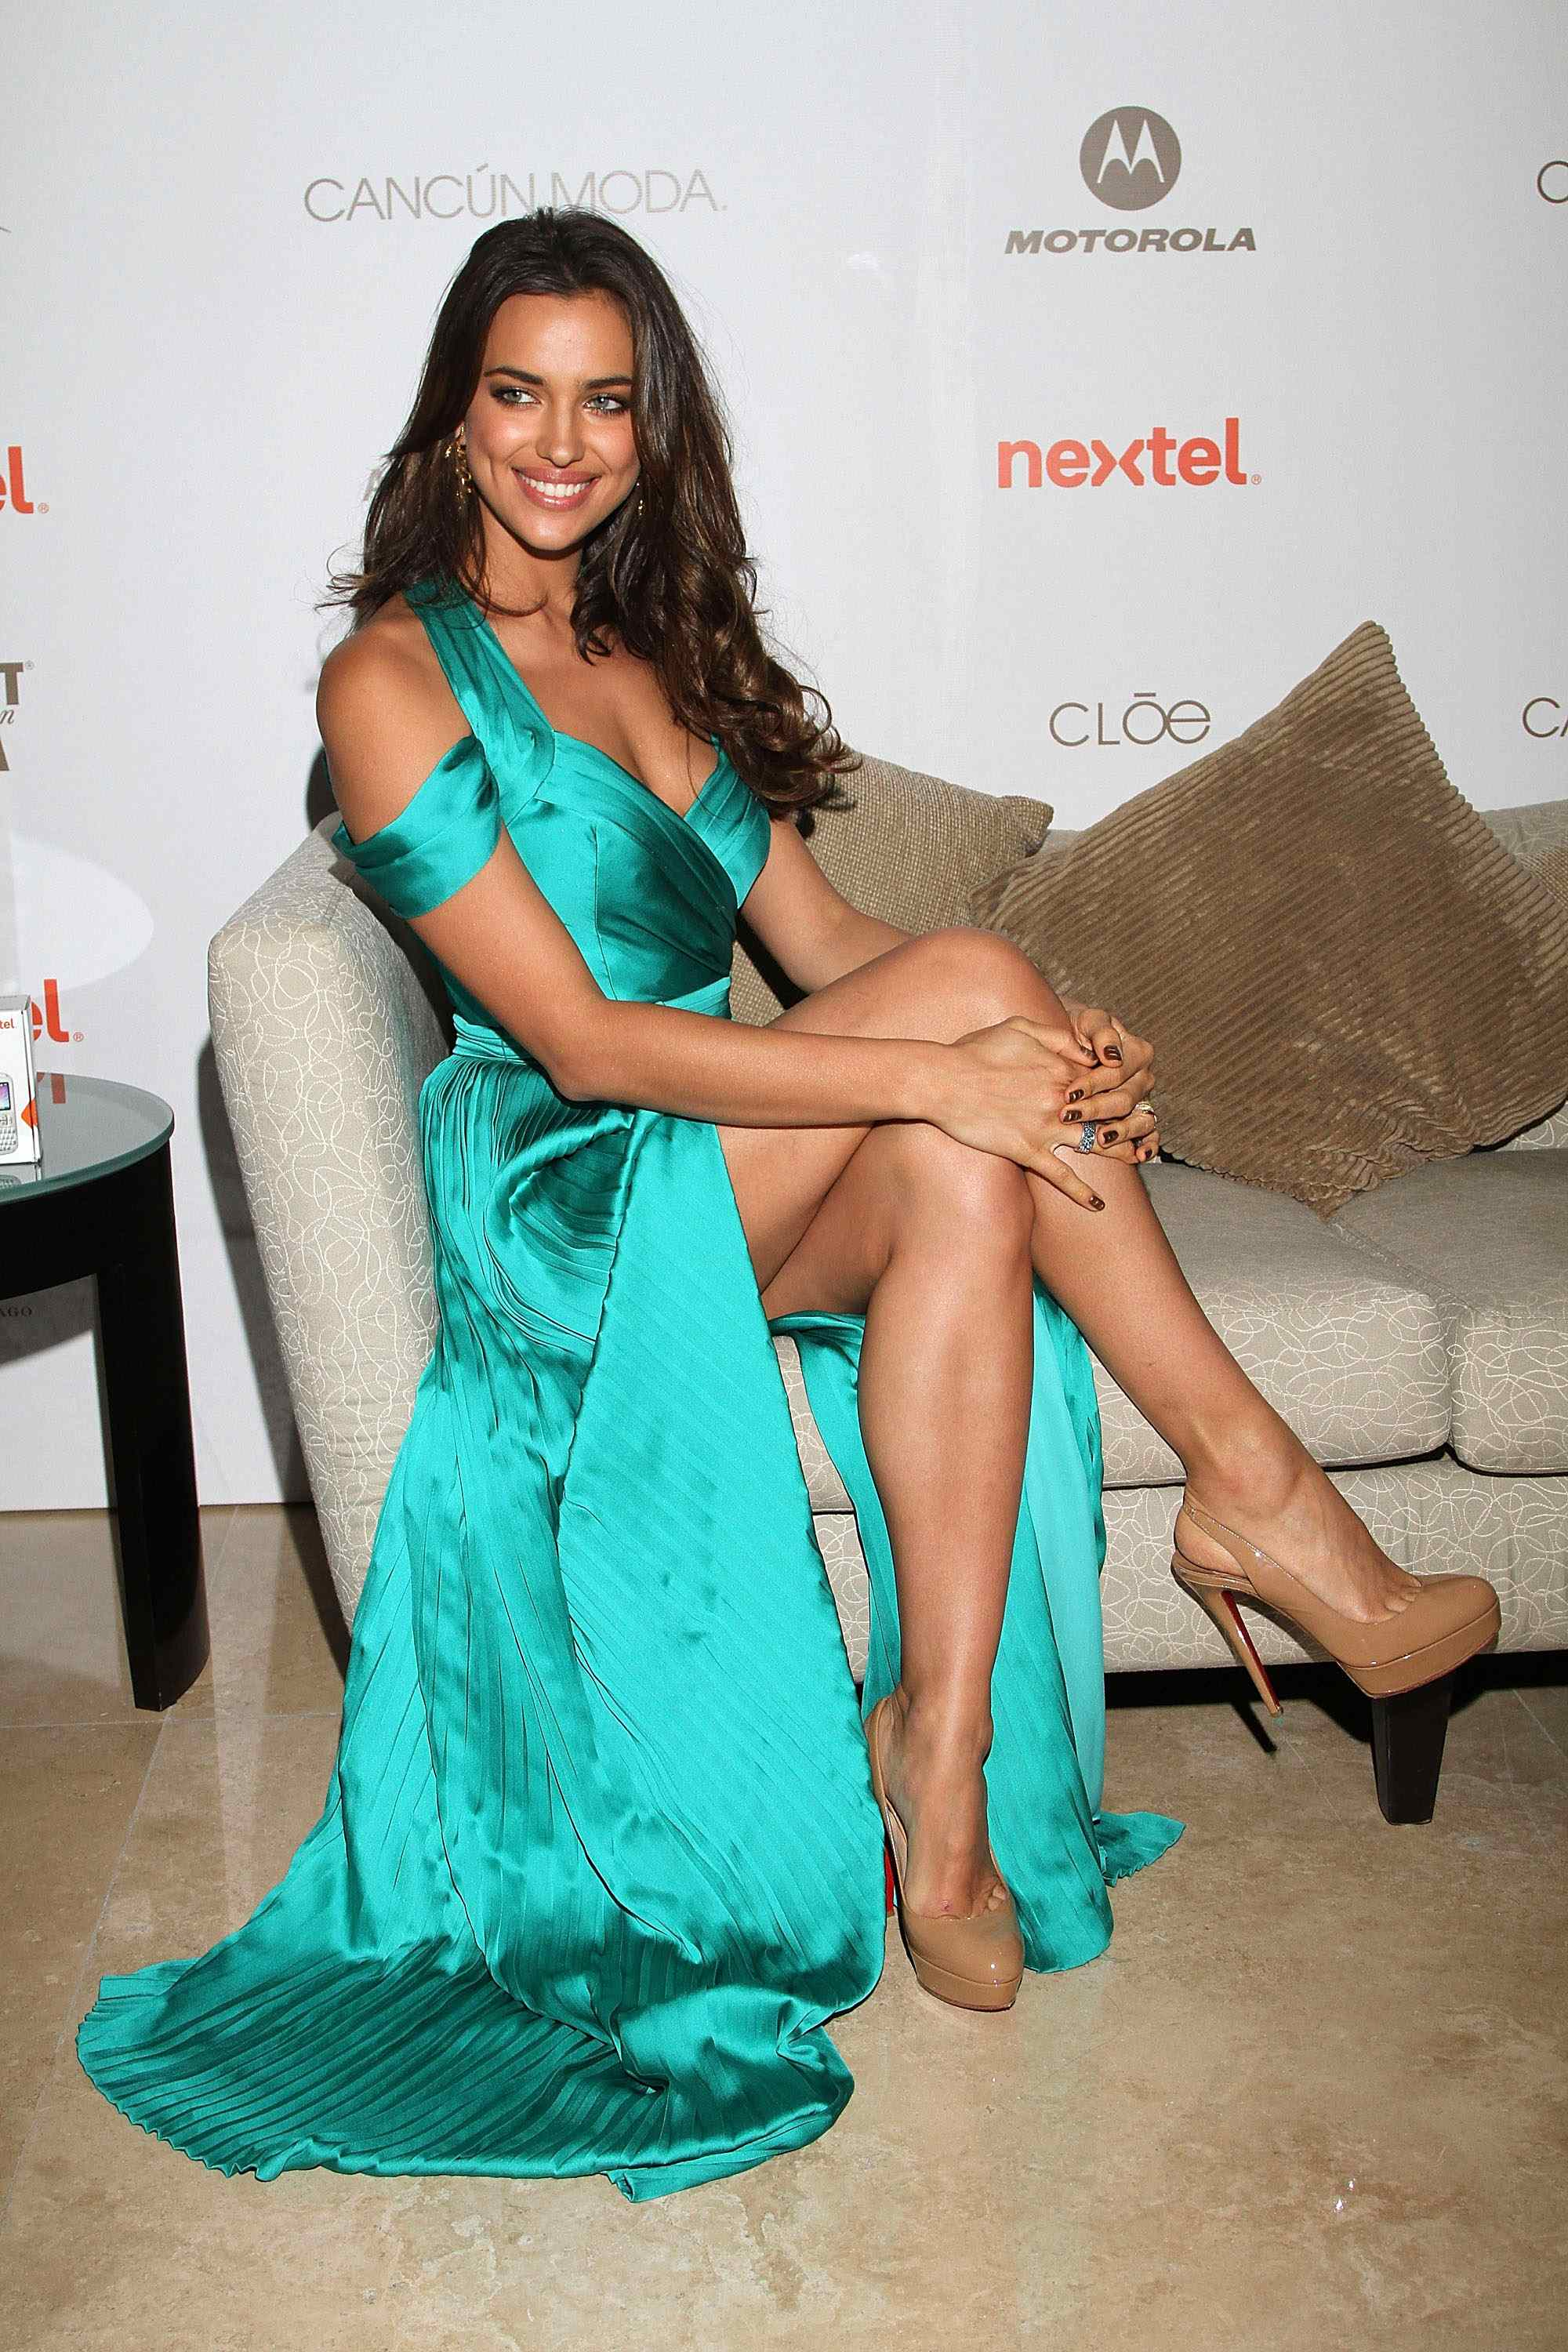 Cancun Moda Nextel 2011 - Irina Shayk Press Conference